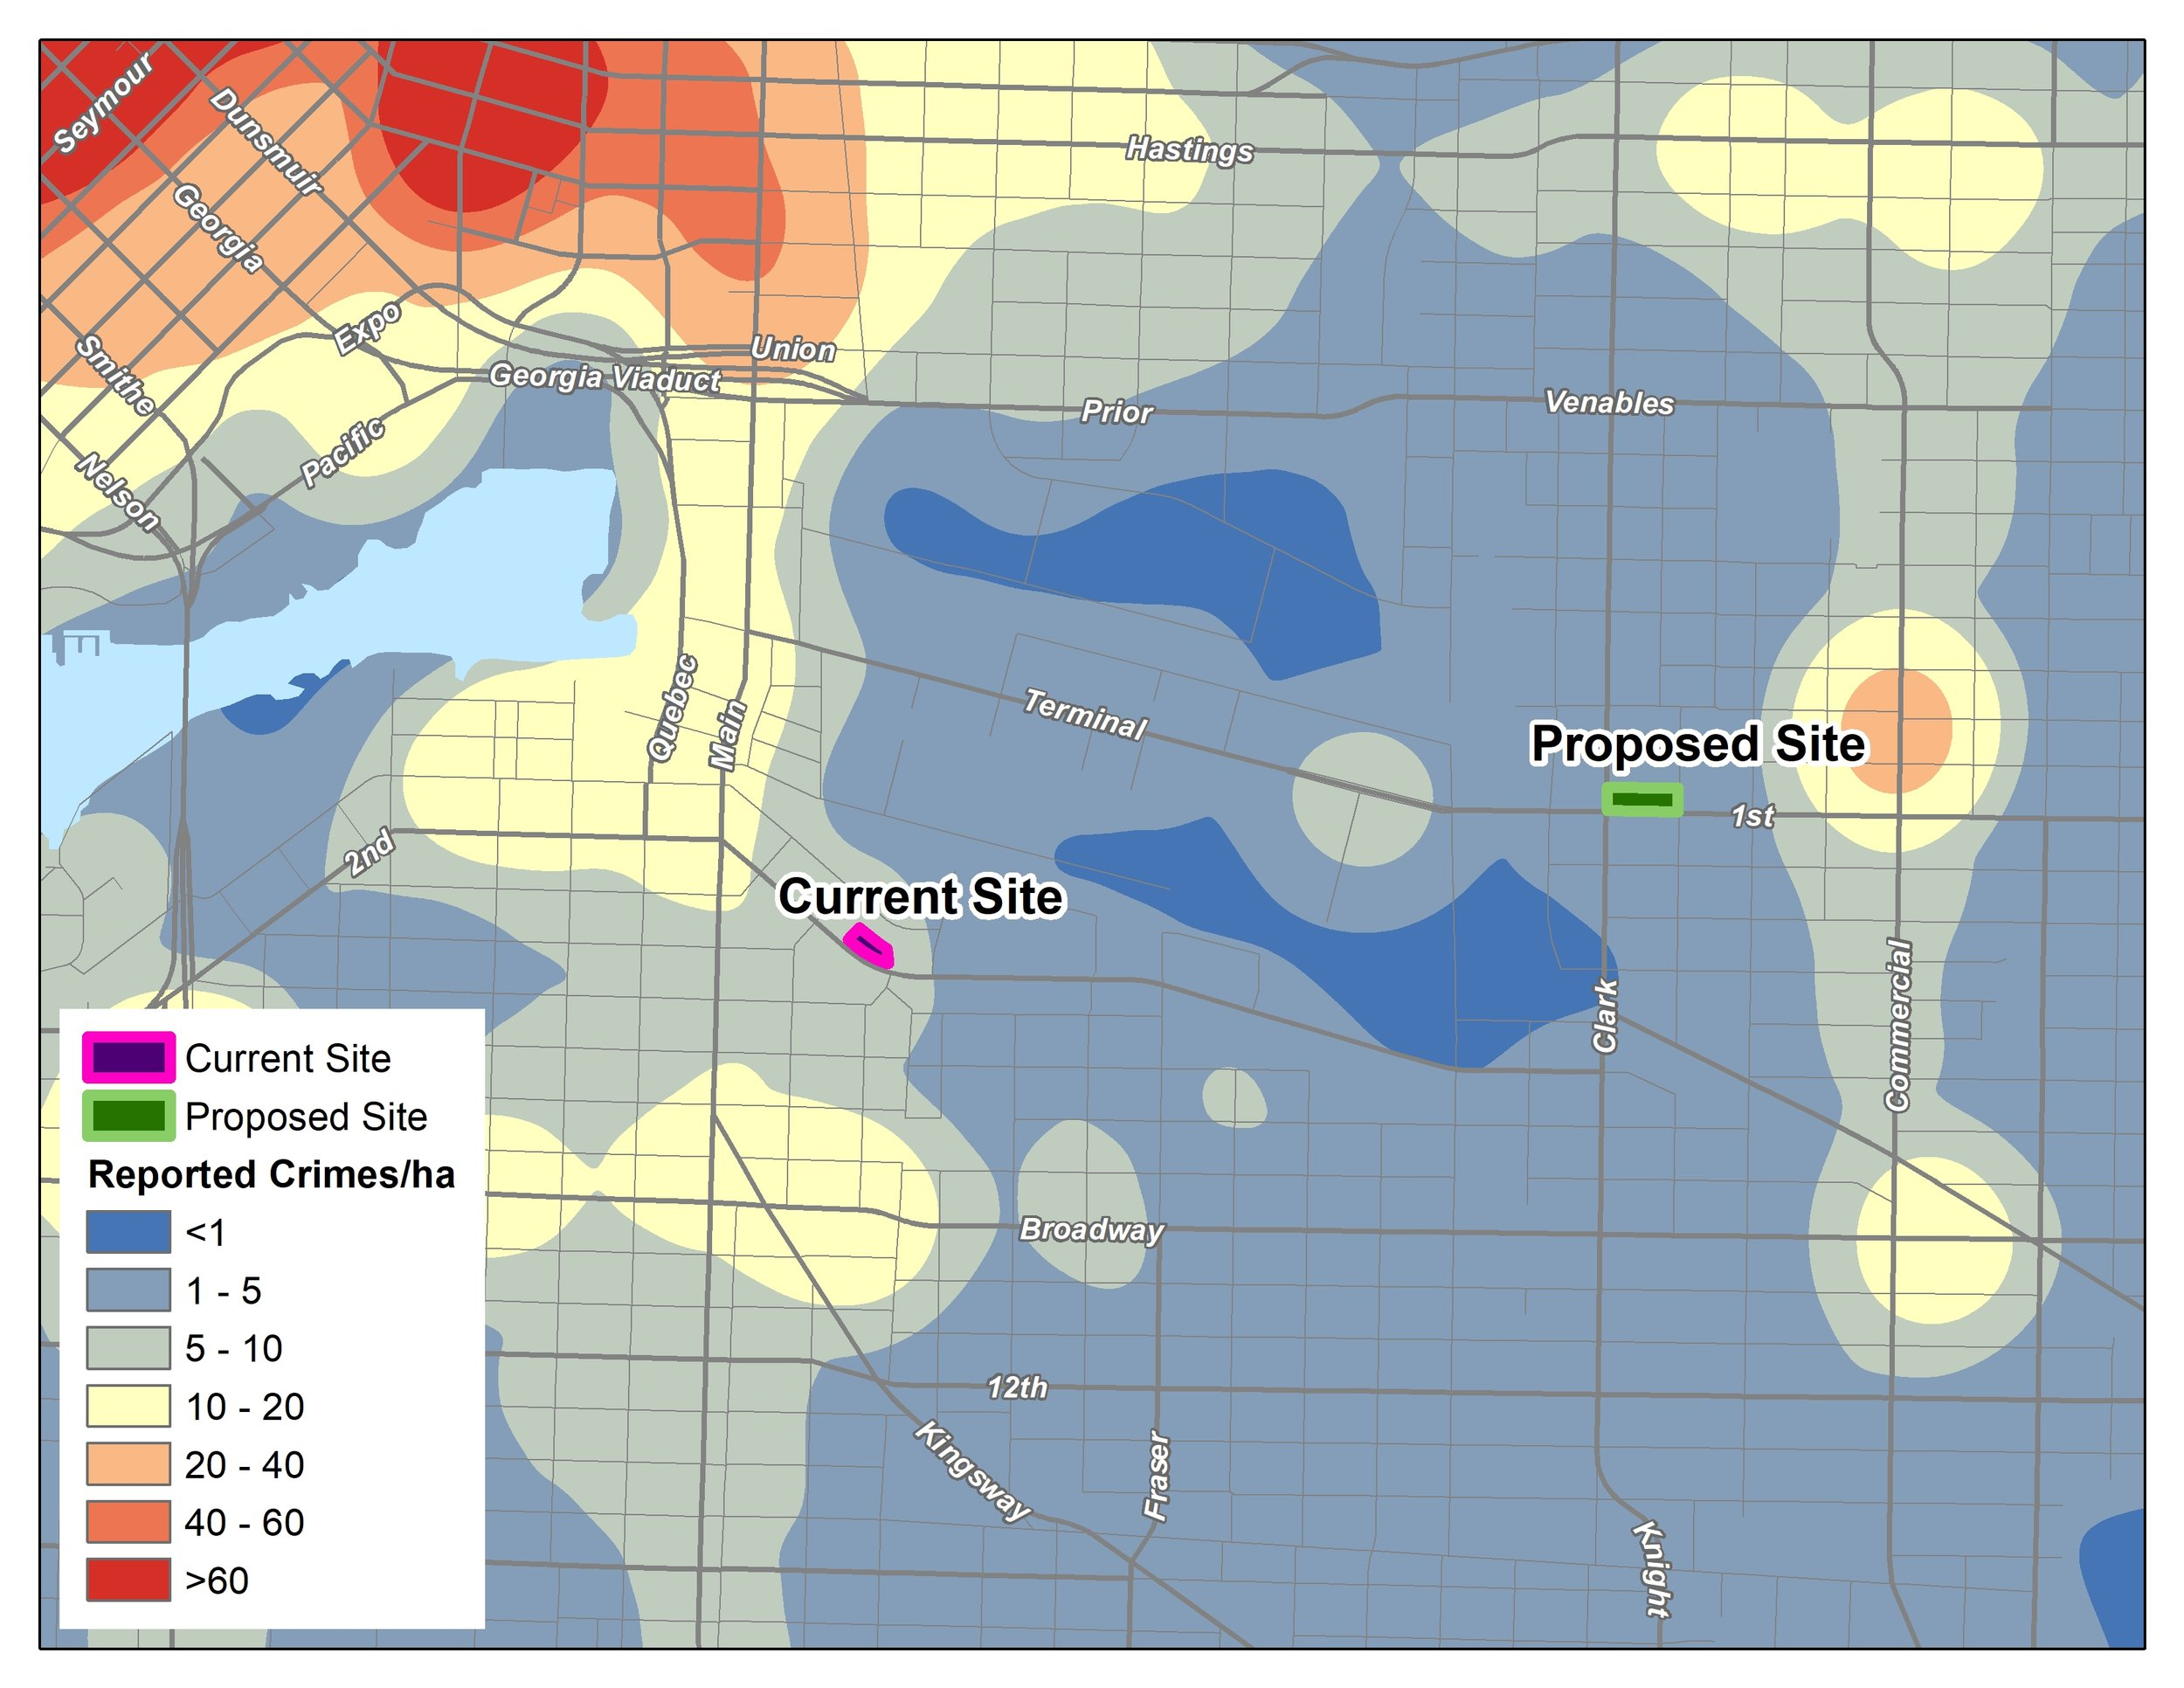 Image 2: Density of Reported Crimes/ha